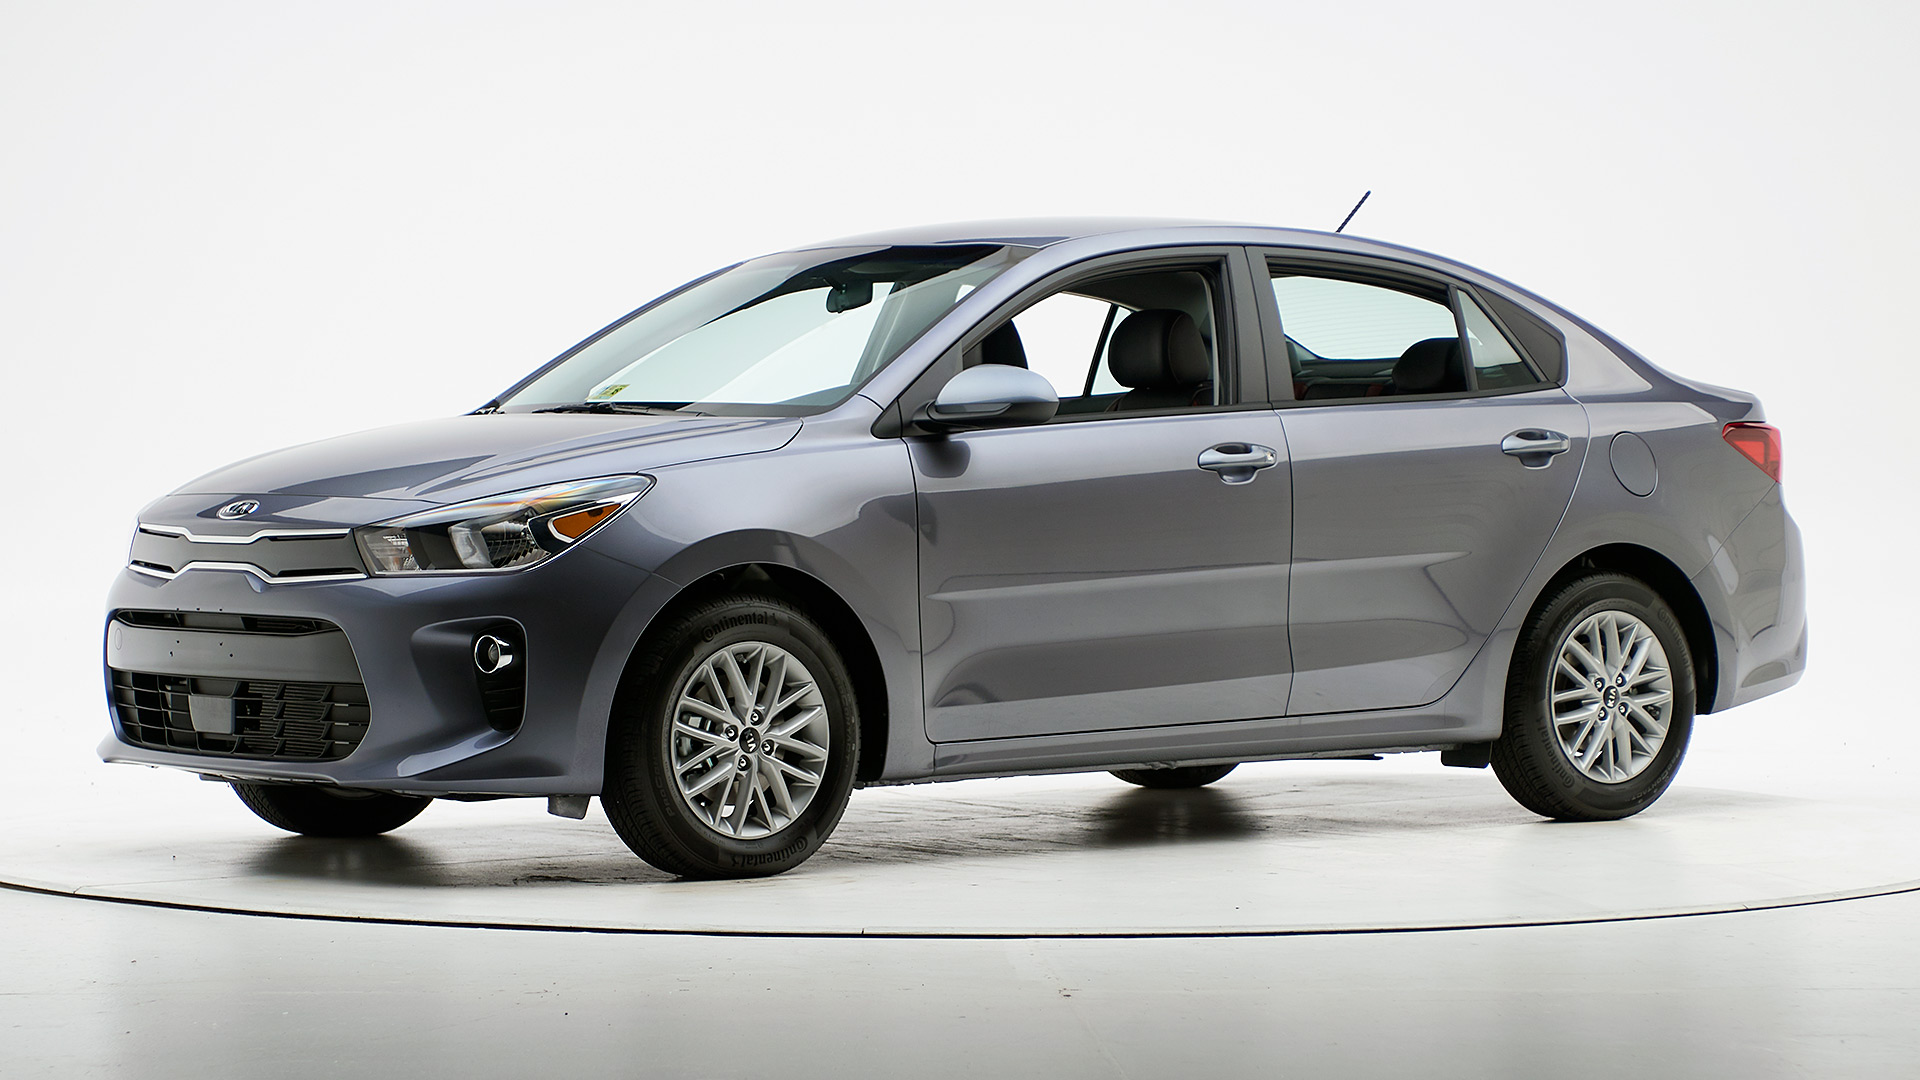 2021 Kia Rio 4-door sedan